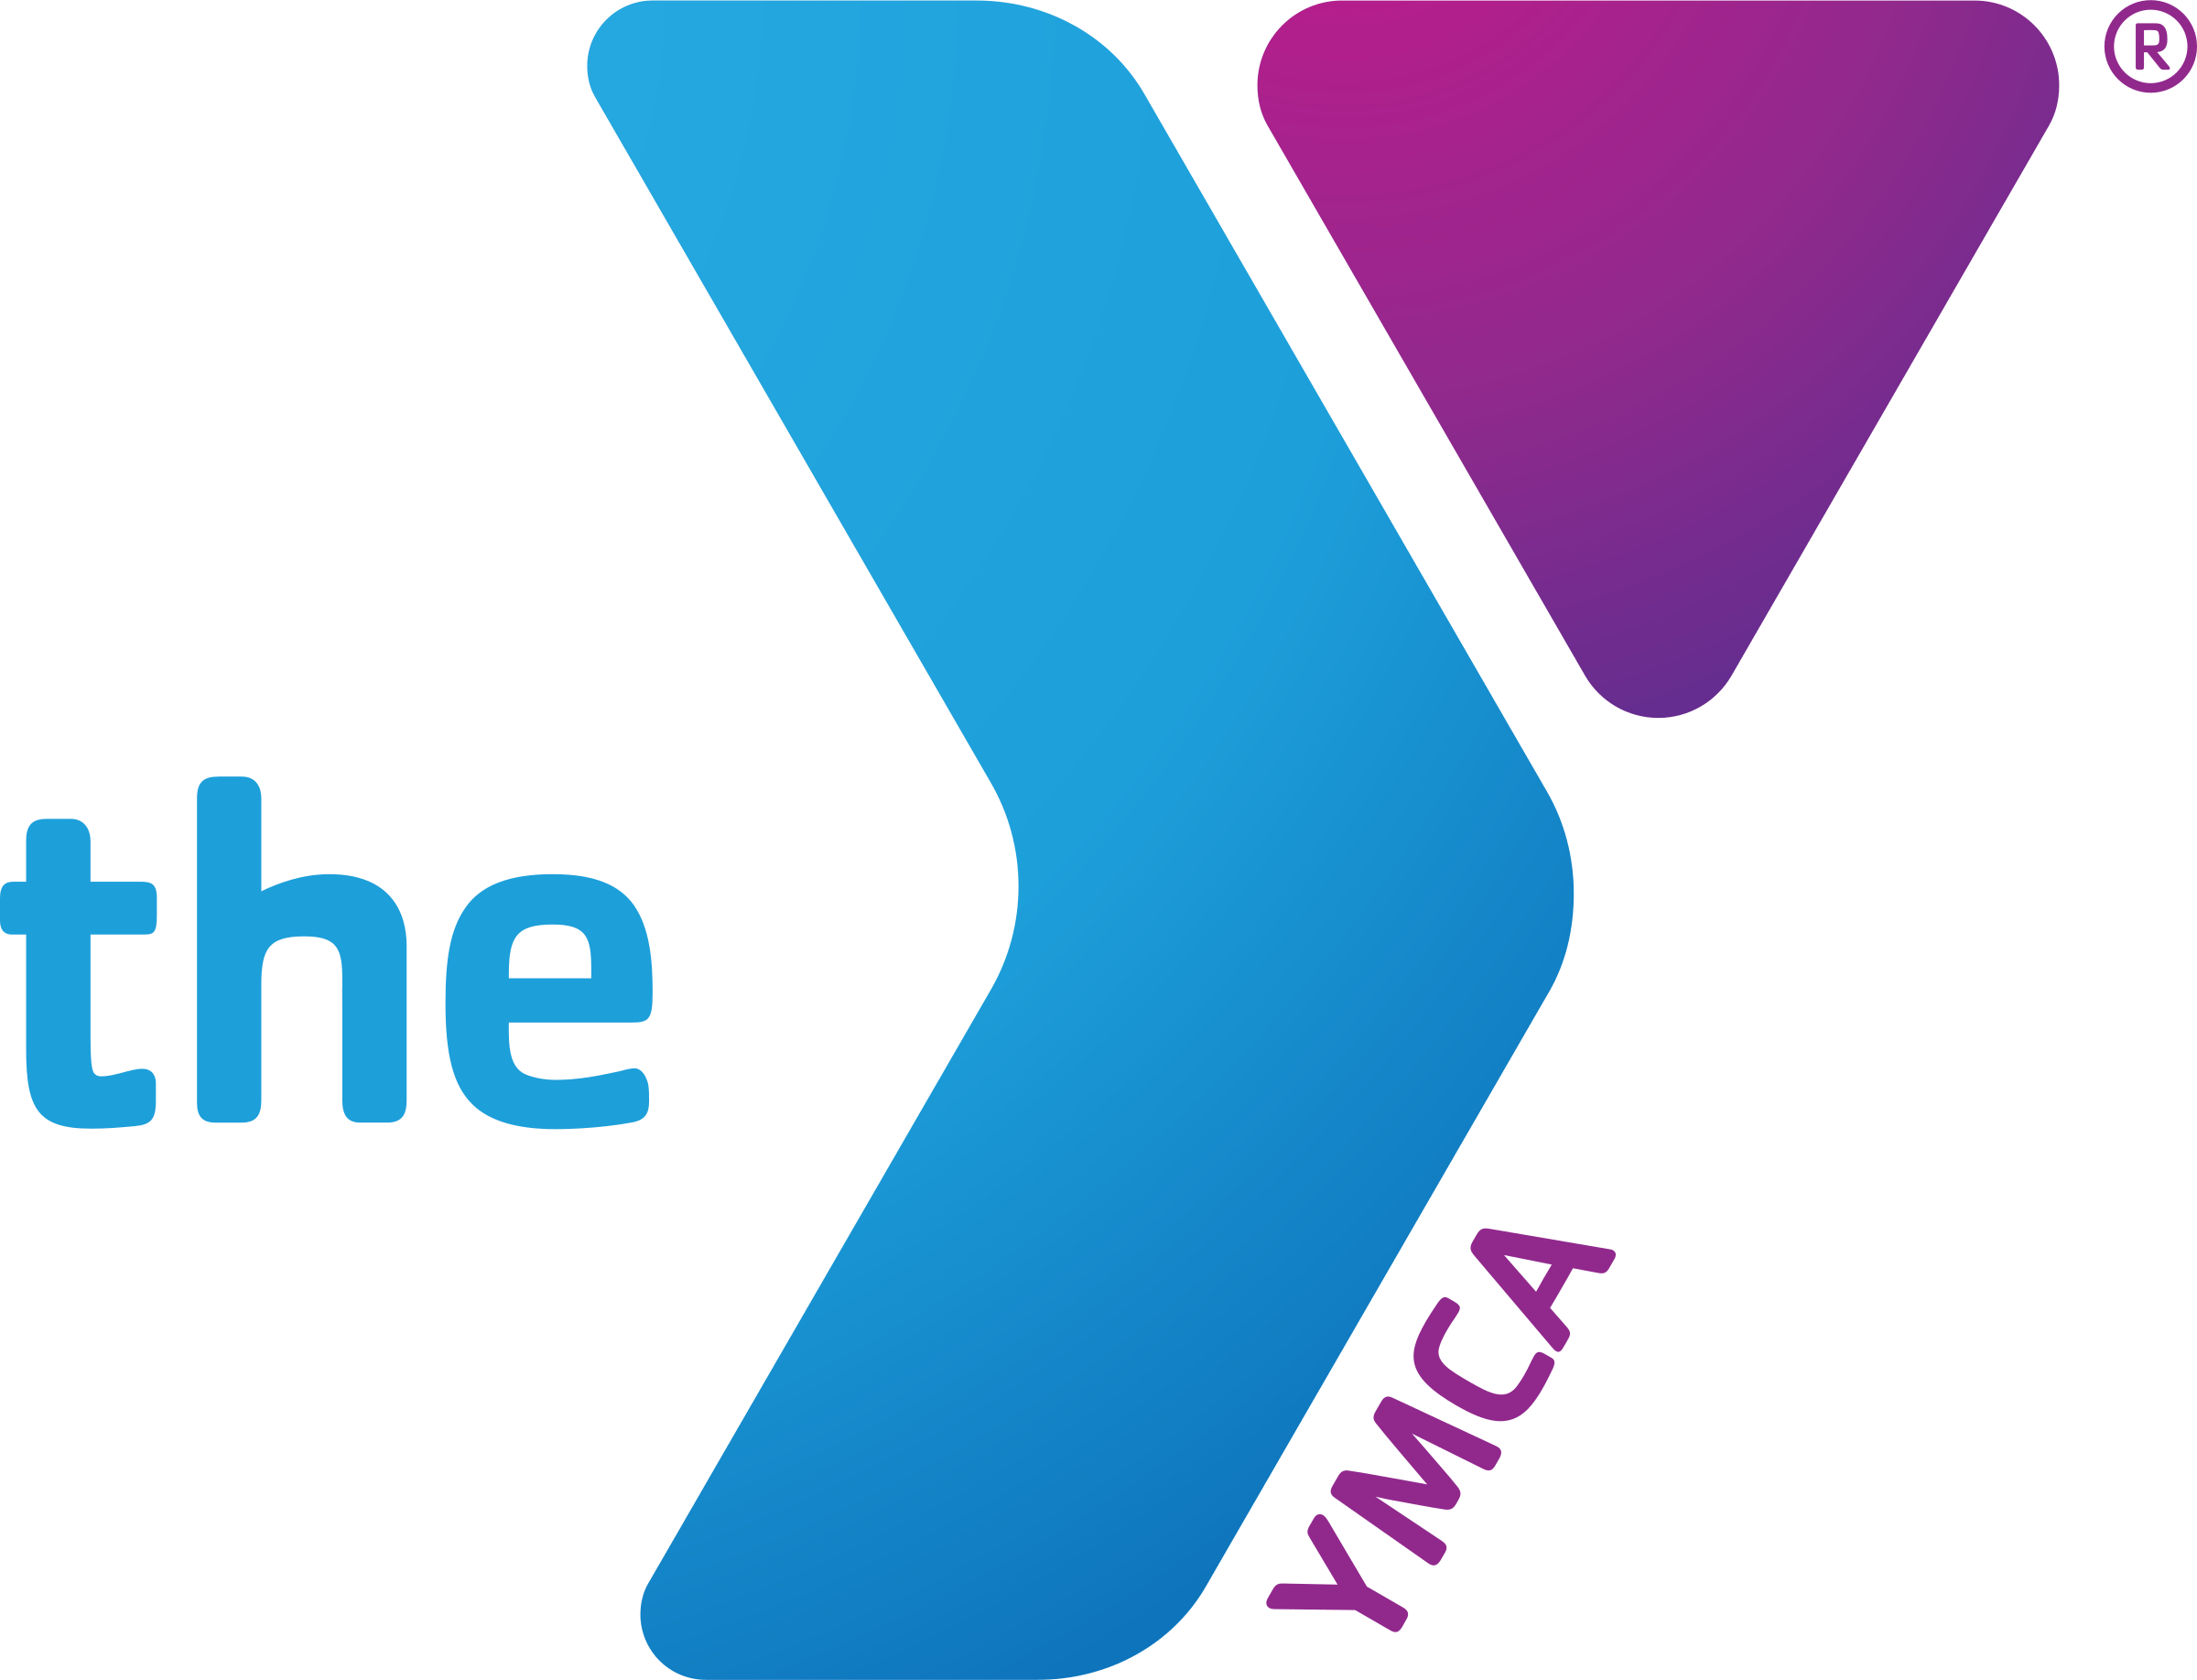 110-1108848_ymca-3-logo-png-transparent-new-ymca.png